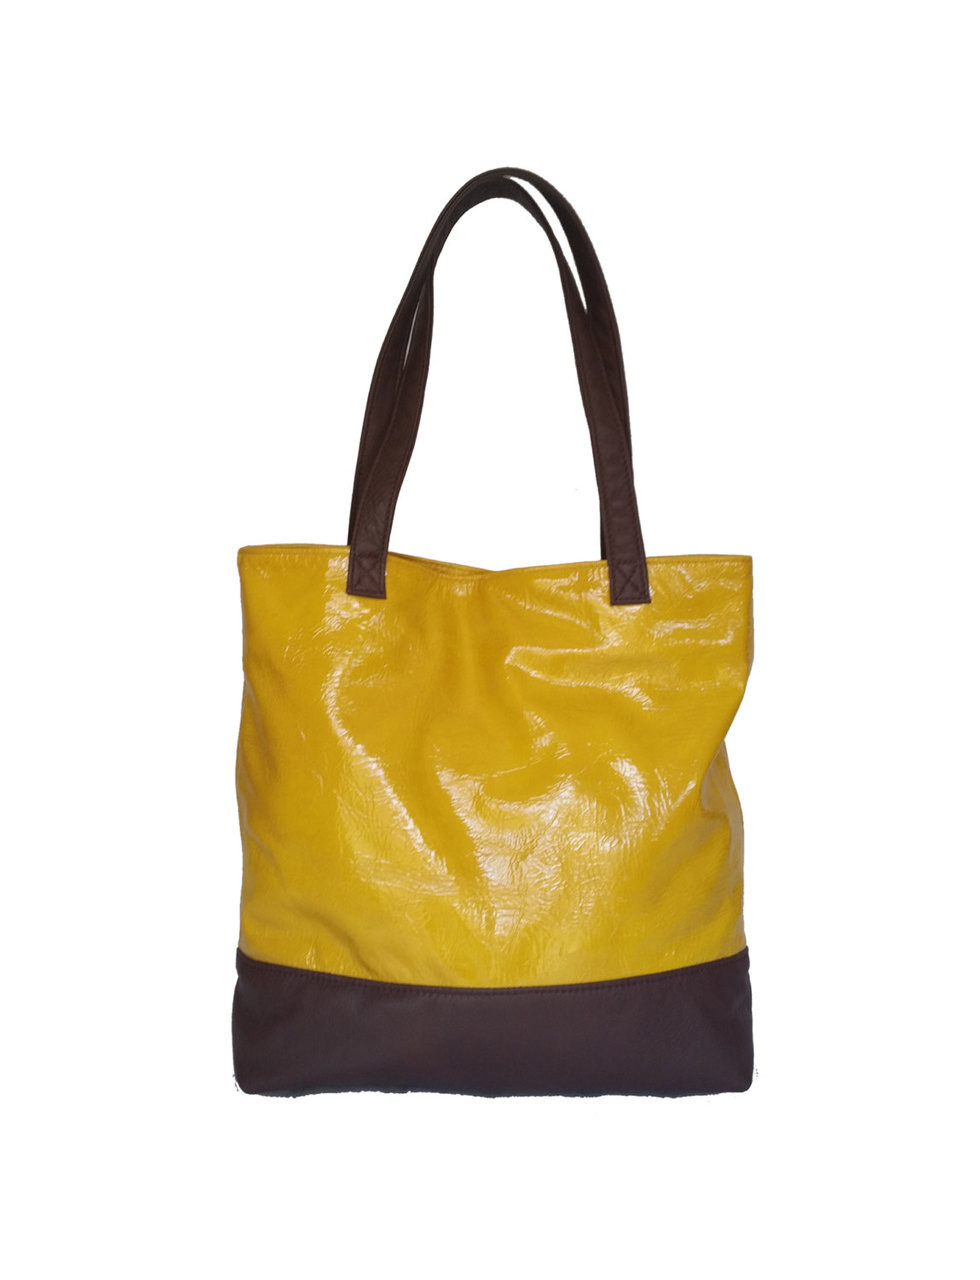 8ec0ff45b7c79 Women's Leather Tote Bag - Carryall Shoulder Purse - Two Tone Handmade Totes  yosy